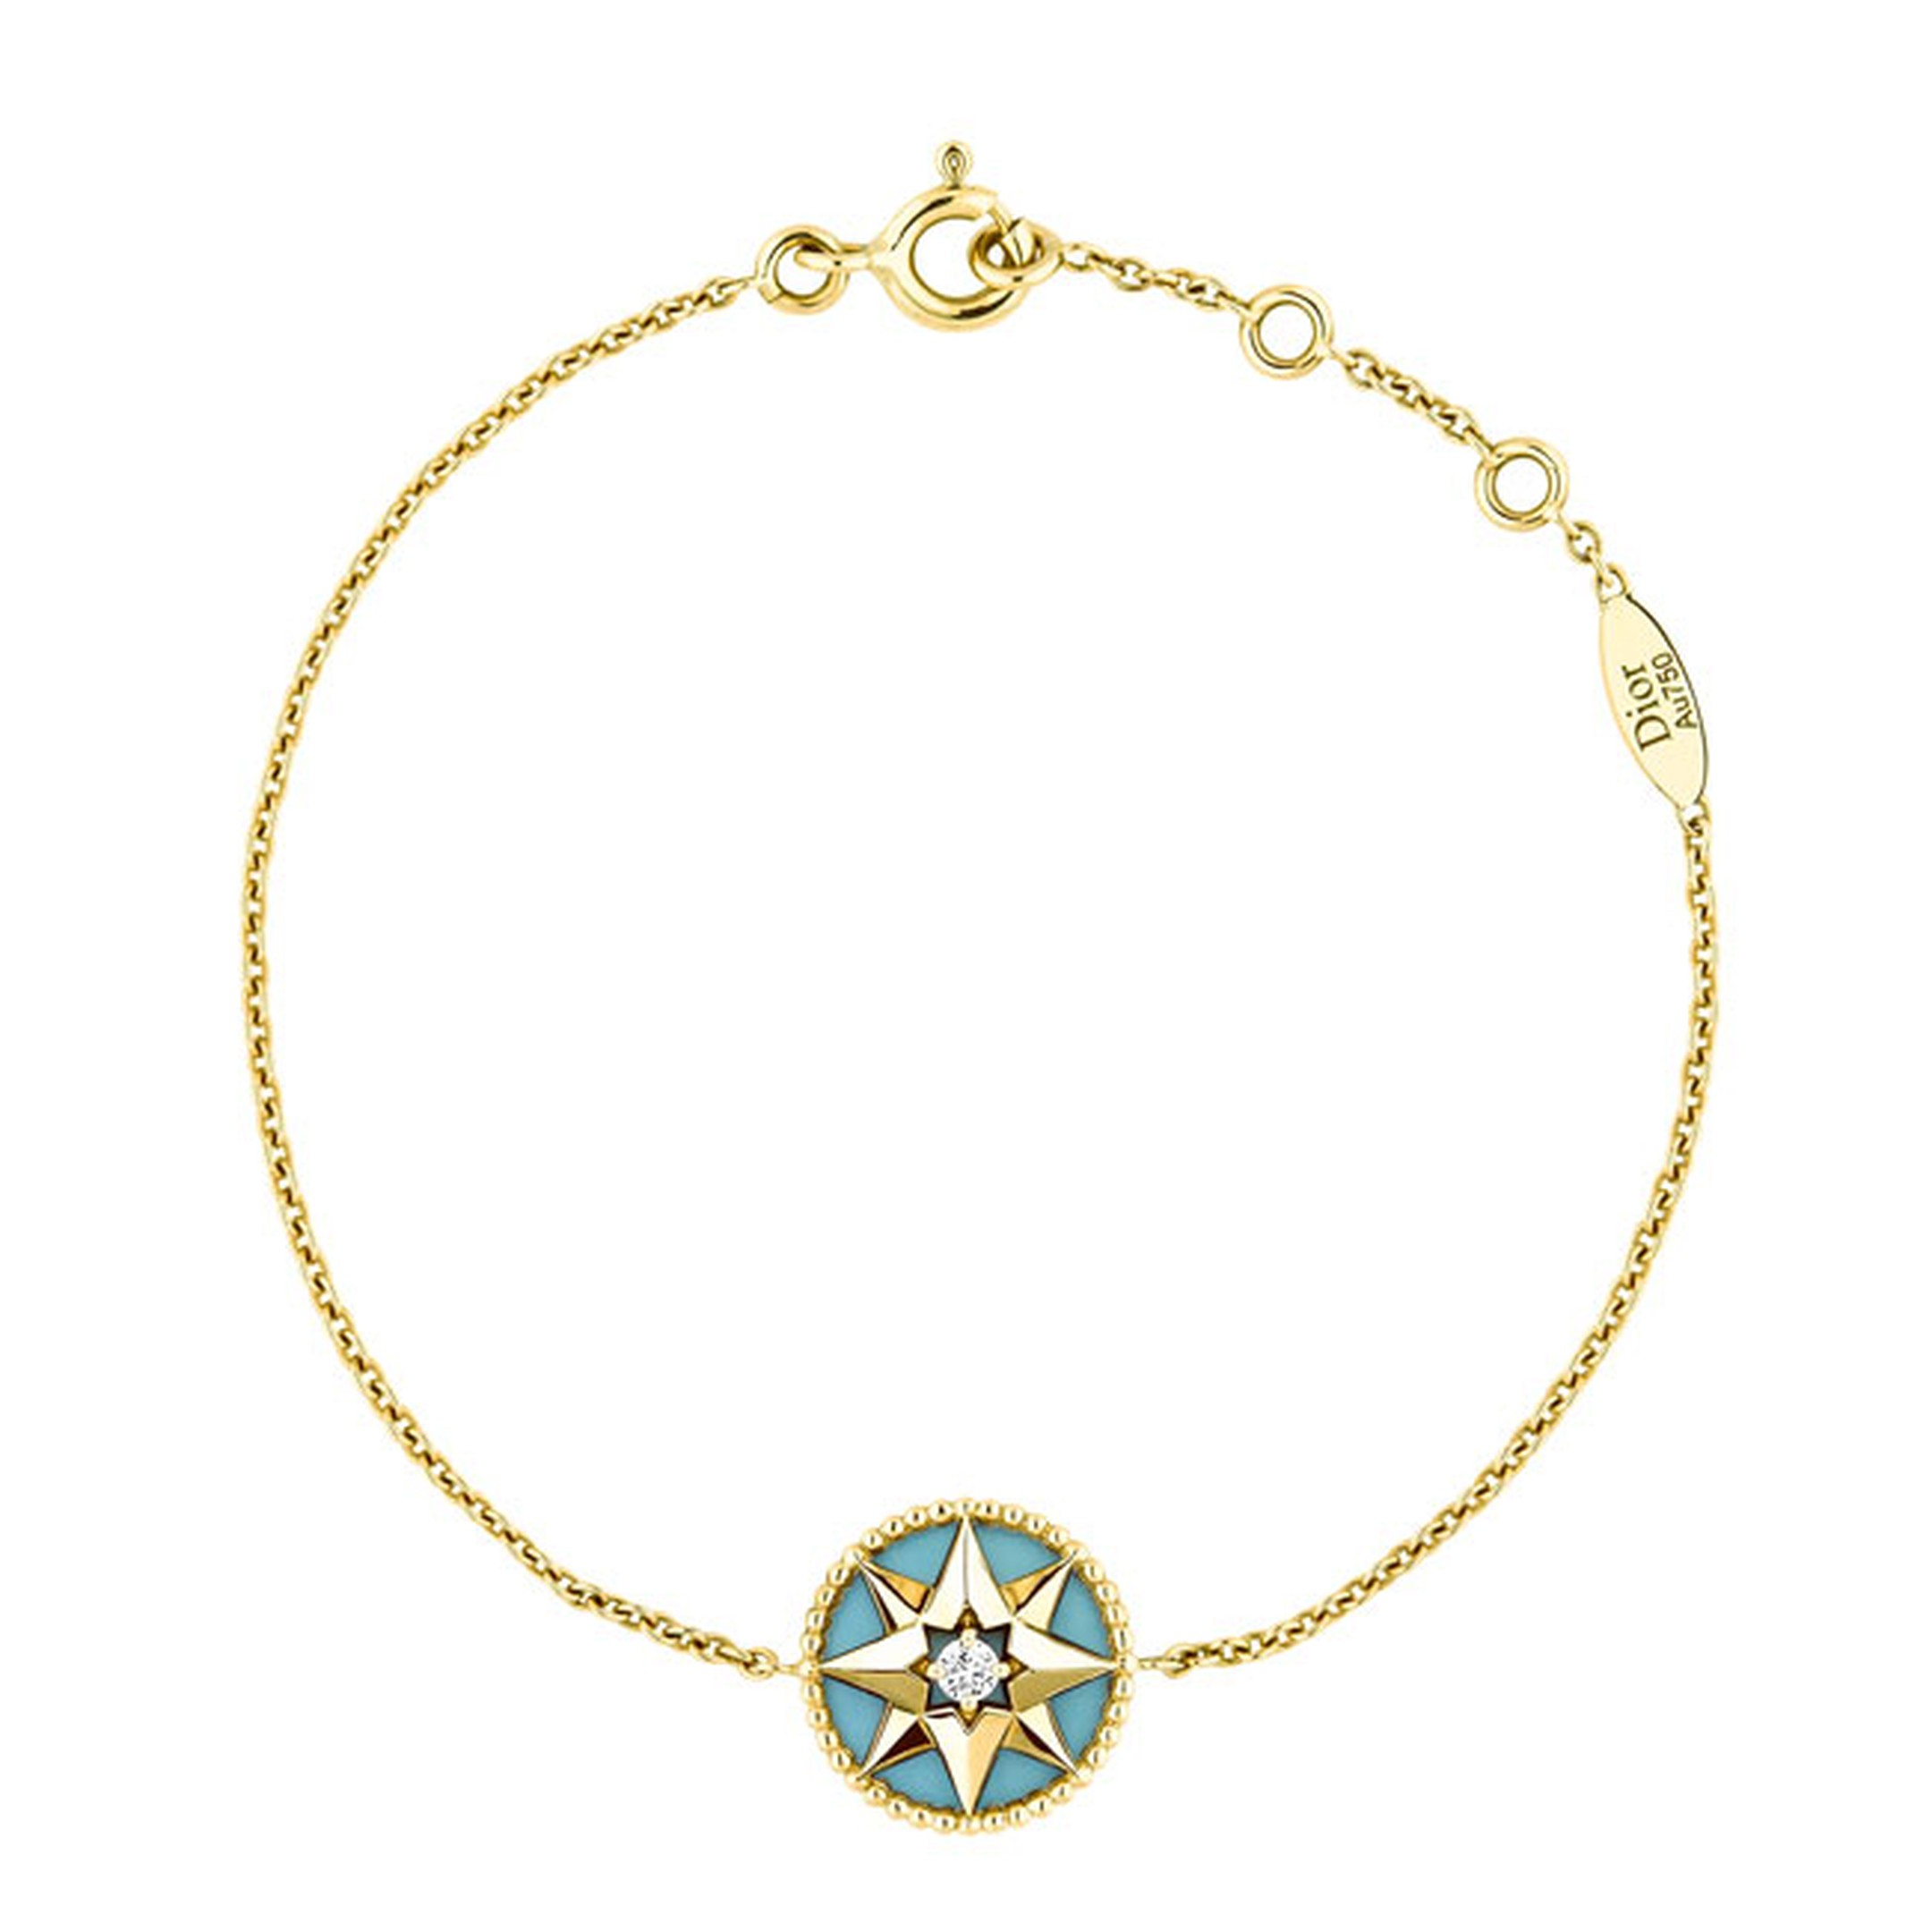 Dior Rose Des Vents yellow gold turquoise and diamond bracelet_main